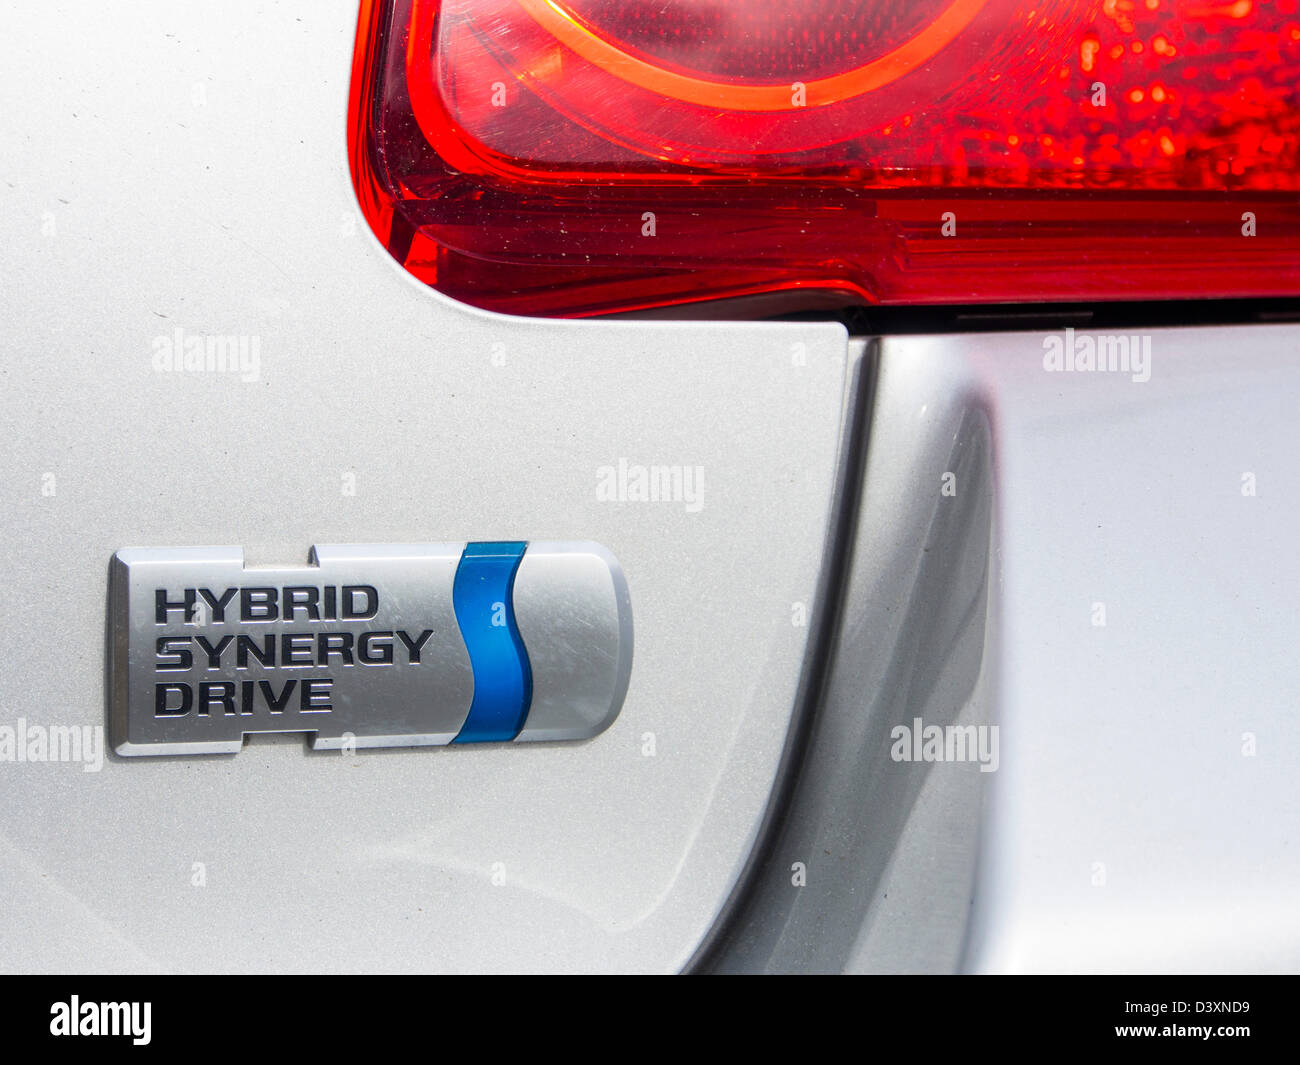 Une Toyota Hybrid Synergy Drive aura une voiture. Photo Stock